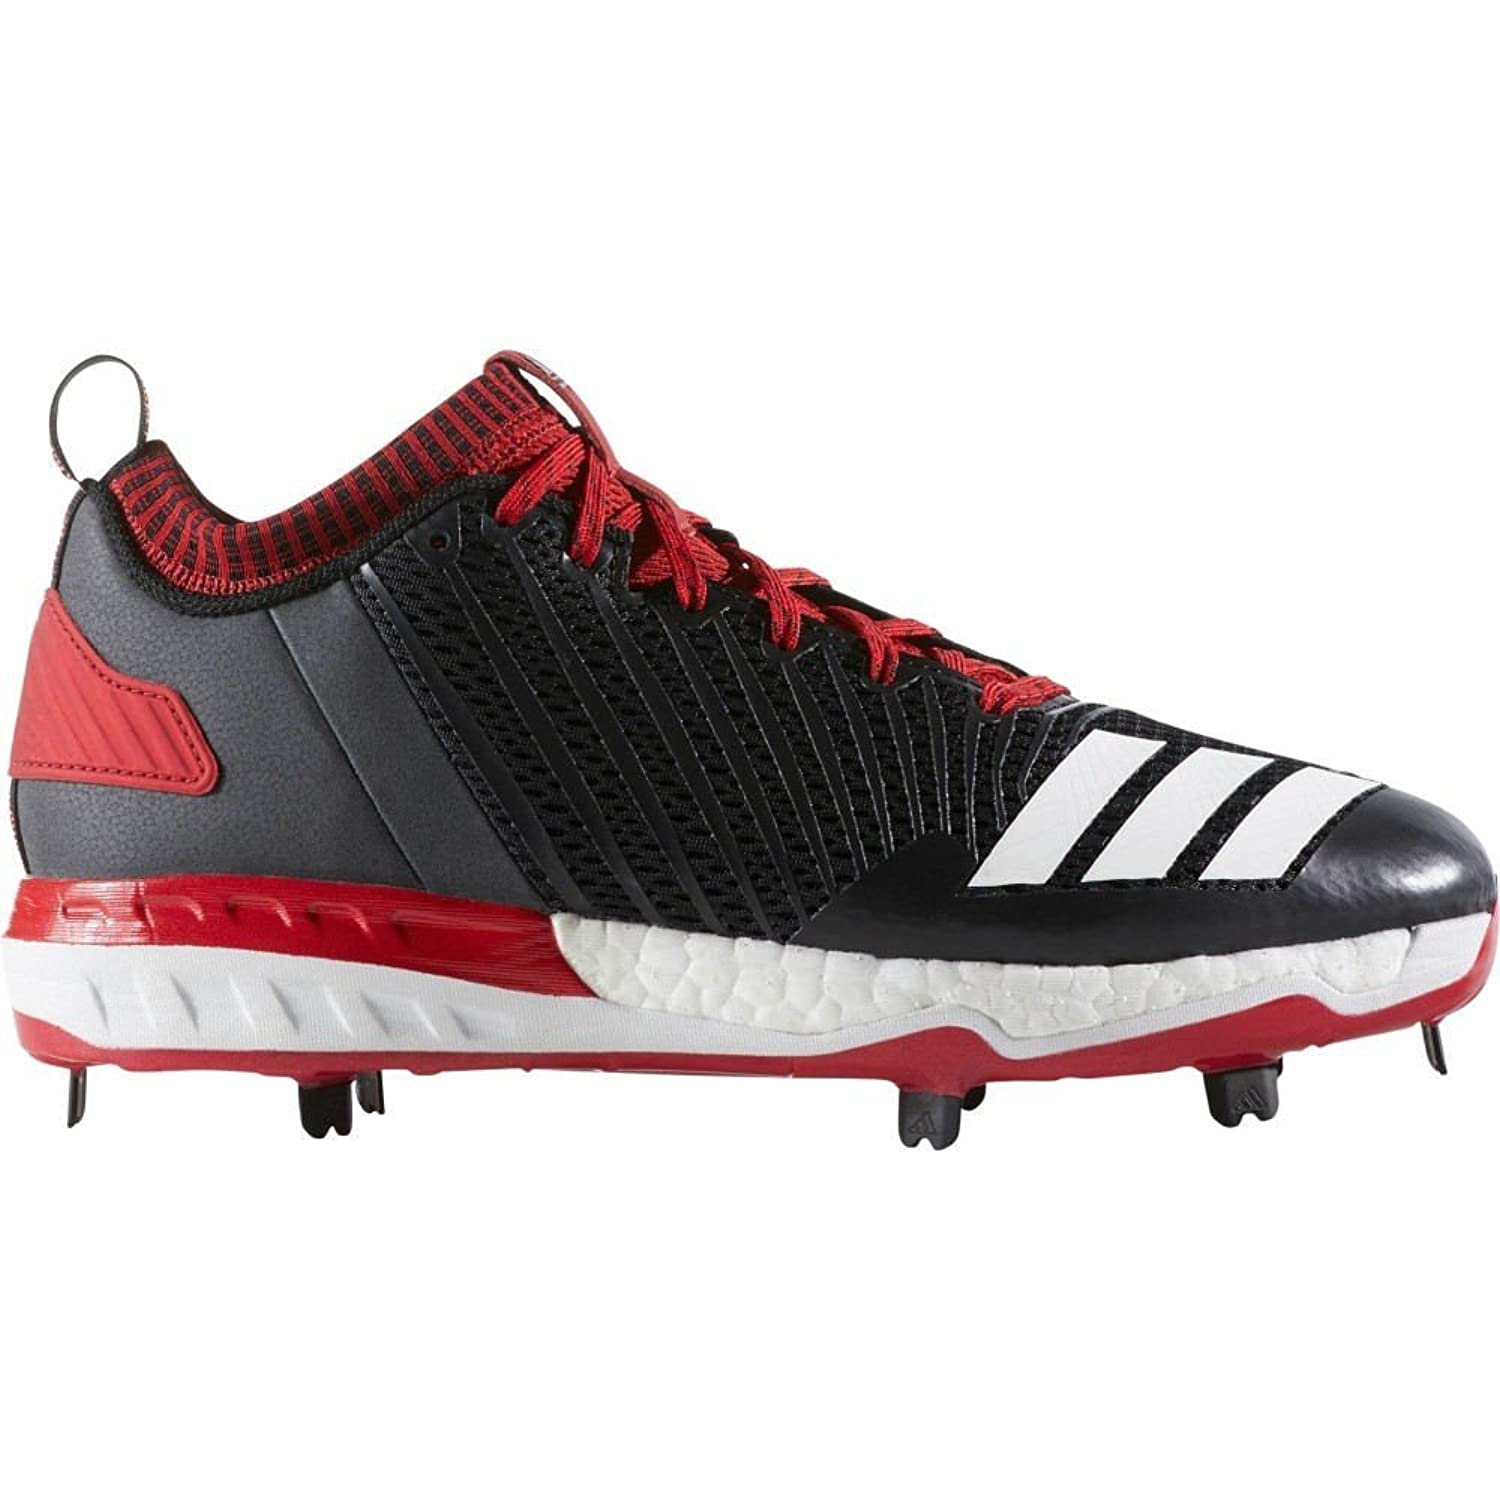 (アディダス) adidas メンズ 野球 シューズ靴 adidas Boost Icon 3 Metal Baseball Cleats [並行輸入品] B077XVFLJH 8.5-Medium